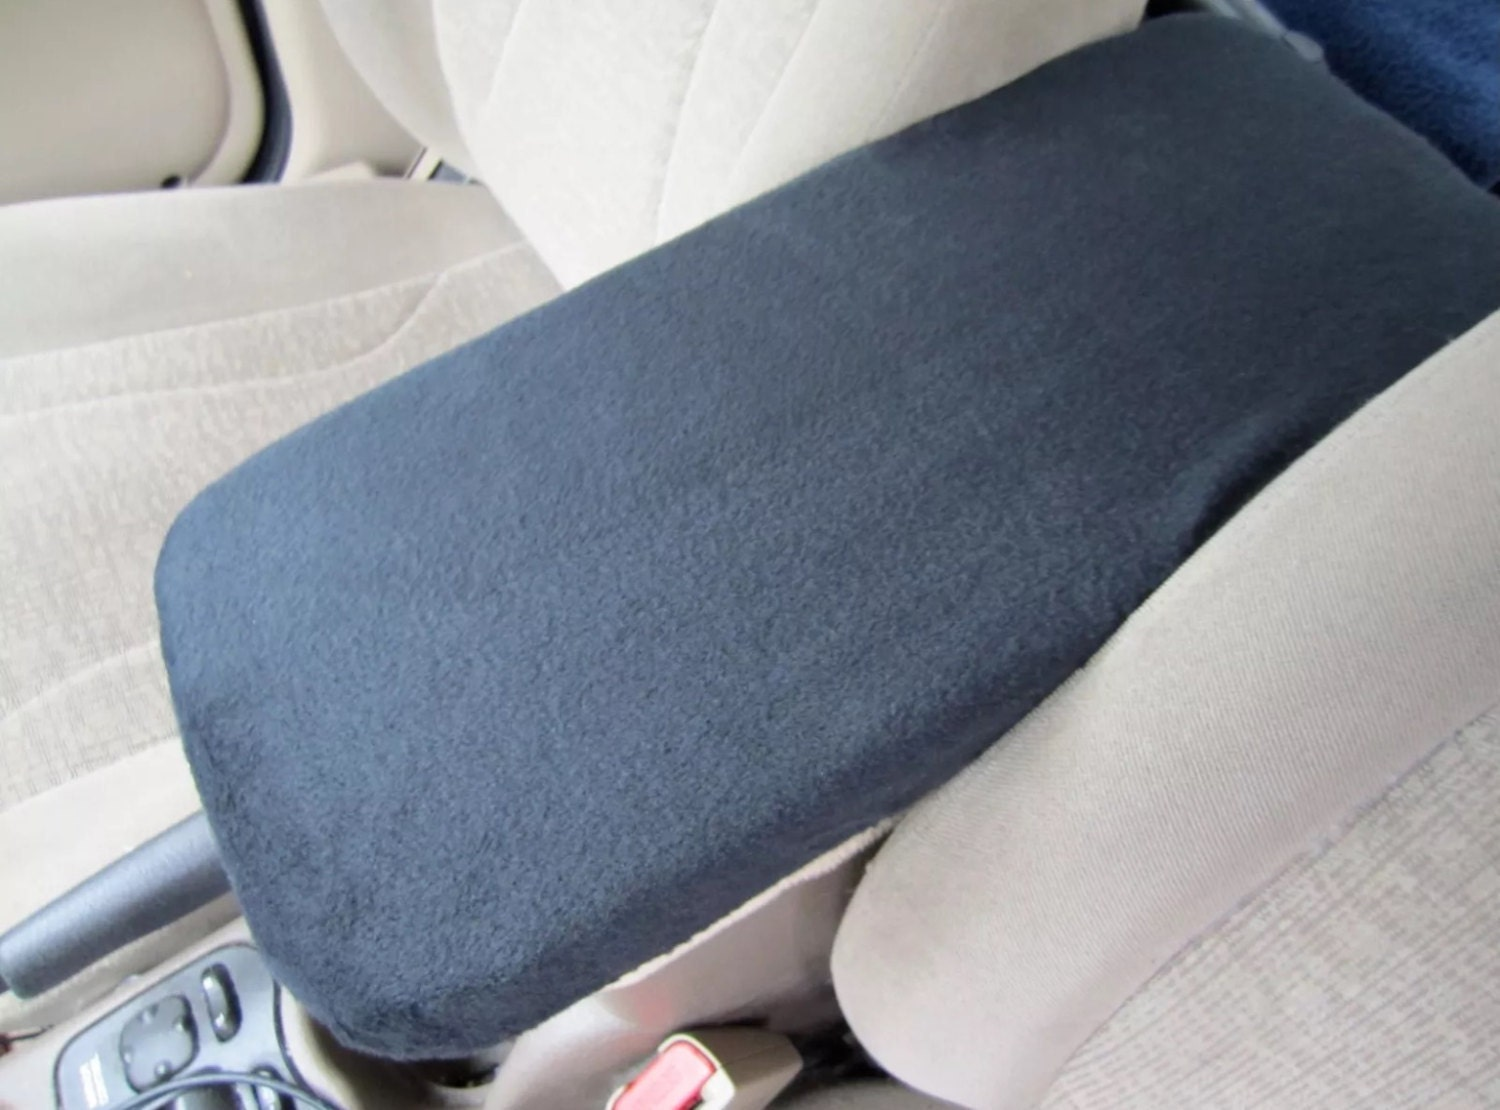 2013 Nissan Altima Center Console Covers Armrest Covers